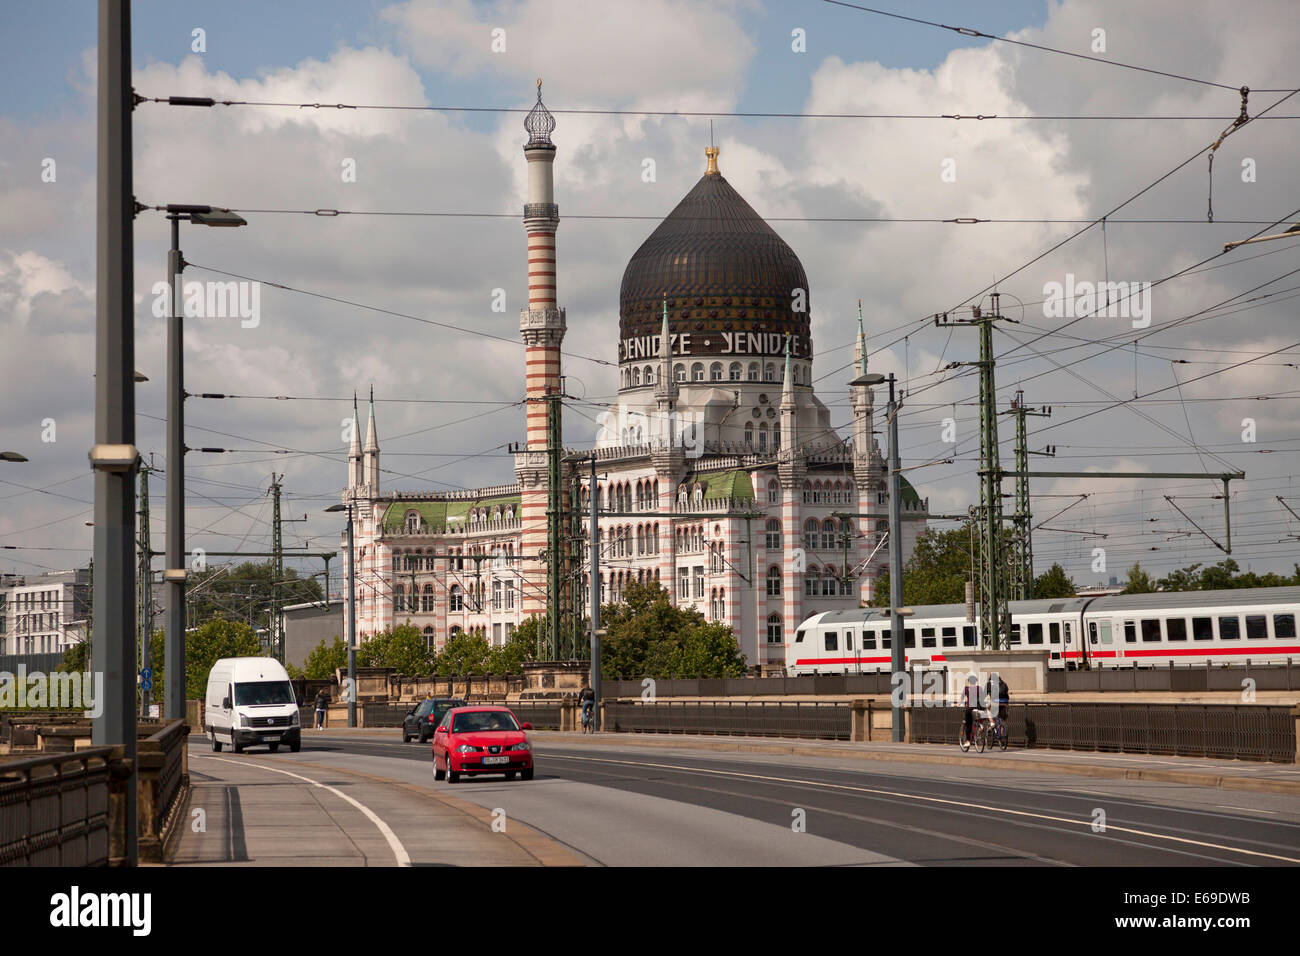 former cigarette factory building Yenidze and traffic in Dresden, Saxony, Germany, Europe - Stock Image